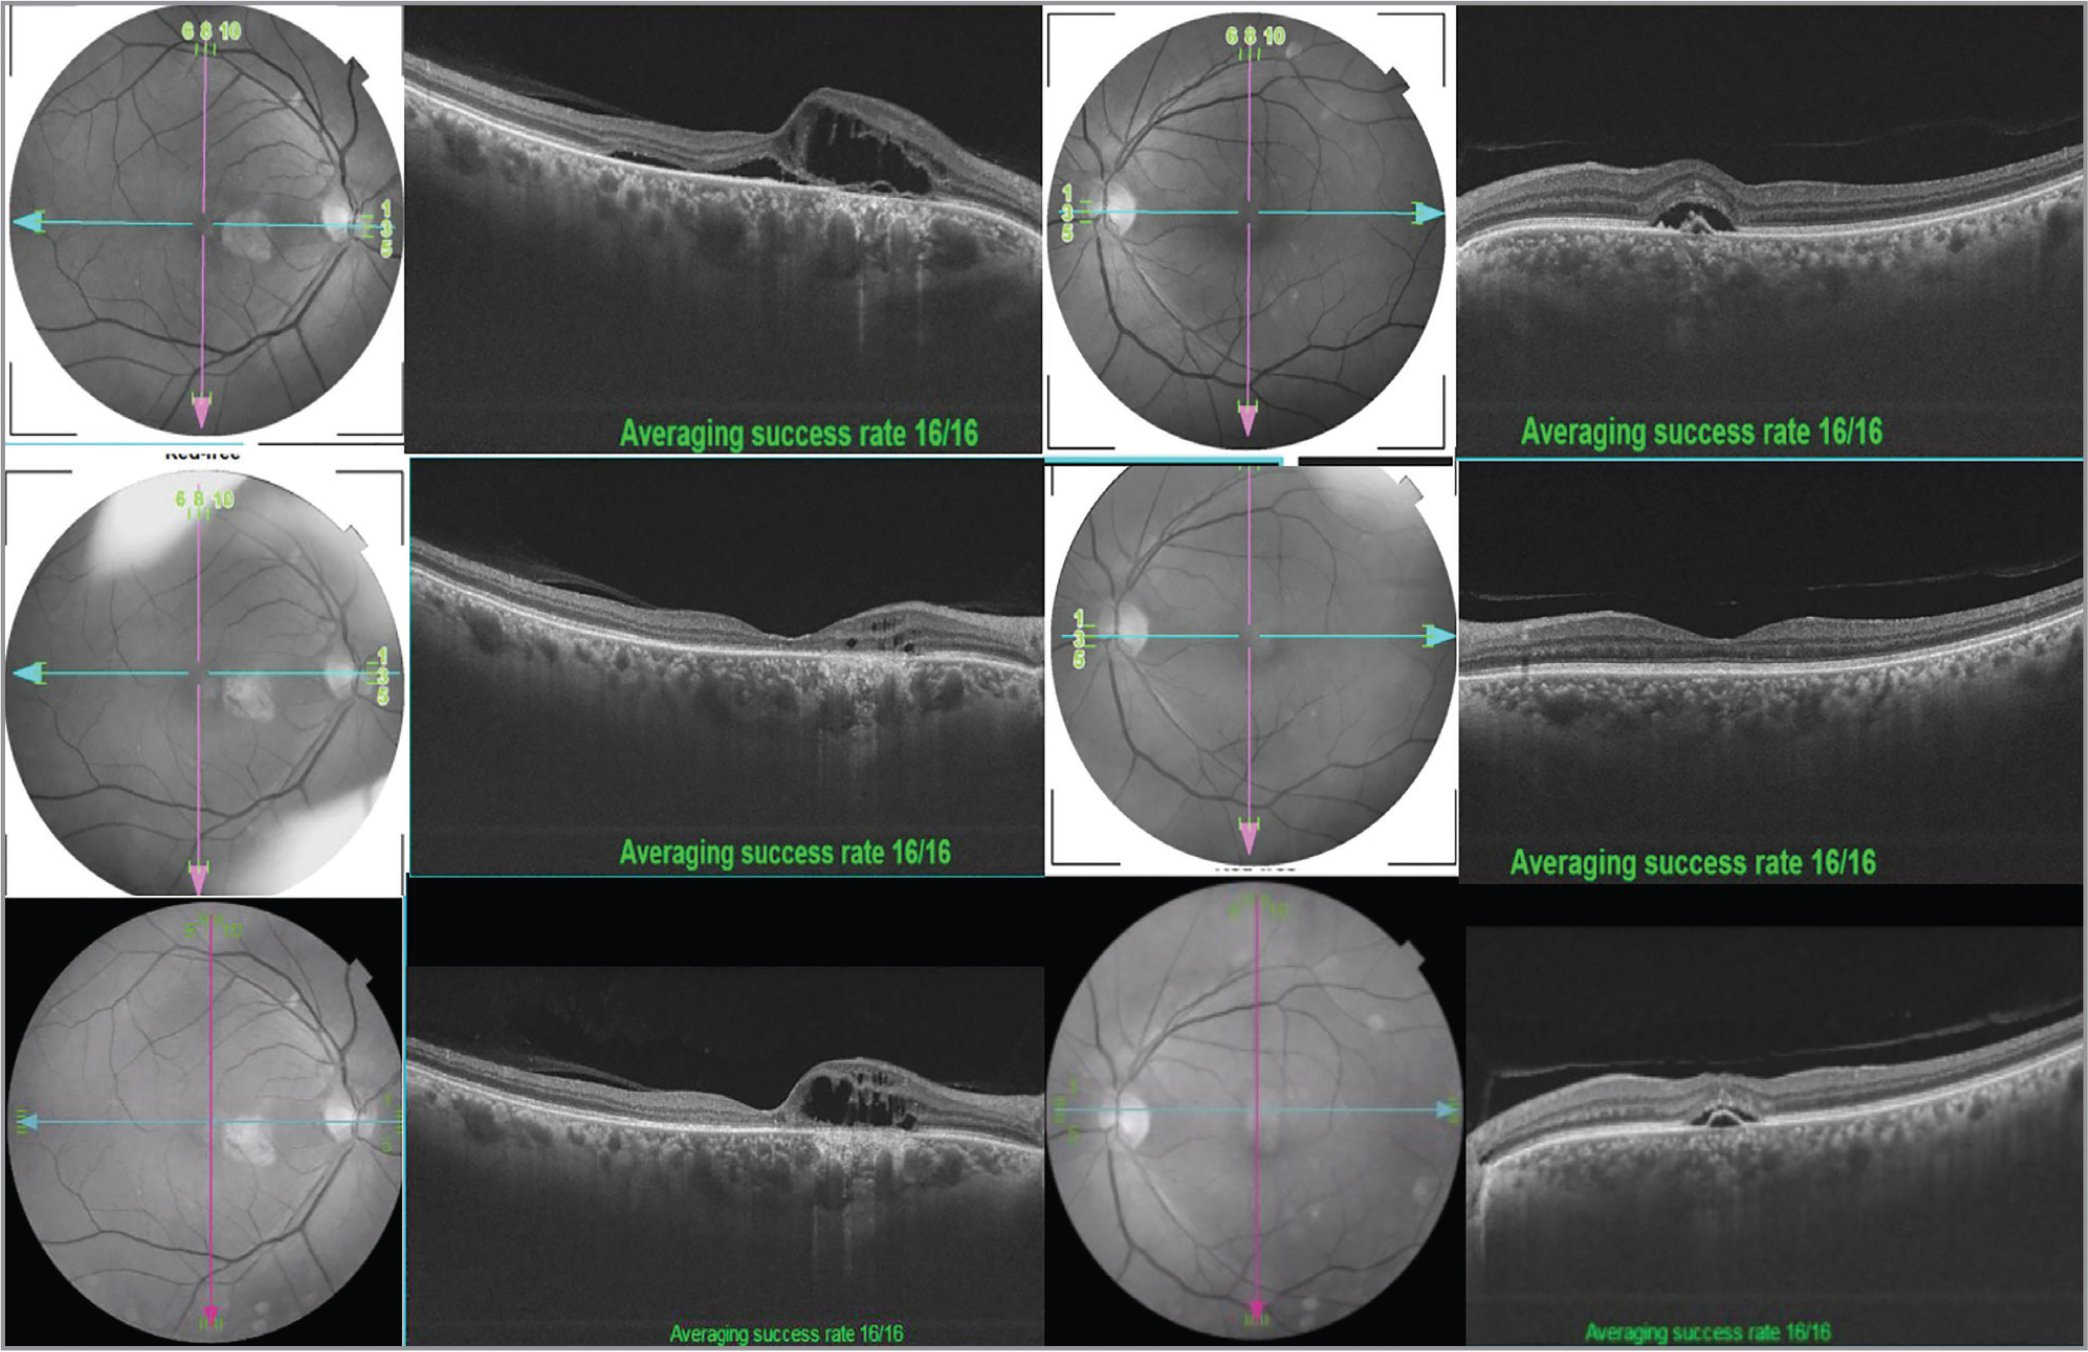 A 62-year-old female presented with blurring of vision for a 6-month duration in both eyes. Her best-corrected visual acuity (BCVA) was 20/200 and 20/25 in right and left eyes, respectively. Clinical examination and angiography showed signs of chronic central serous chorioretinopathy with presence of shallow subretinal fluid and chronic cystoid changes on swept-source optical coherence tomography (SS-OCT) in her right eye and shallow subretinal fluid and a pigment epithelial detachment in her left eye (top panel). She was started on oral eplerenone 50 mg daily for 1 month, then 25 mg daily for 2 months. At the 3-month follow-up, her BCVA improved to 20/125 and 20/20 in the right and left eyes, respectively, with significant improvement on SS-OCT (middle panel) and treatment was stopped. Six-month follow-up after cessation of treatment revealed a reduction in her right eye BCVA to 20/200, whereas left eye remained at 20/20. SS-OCT revealed signs of recurrence of the disease (bottom panel).